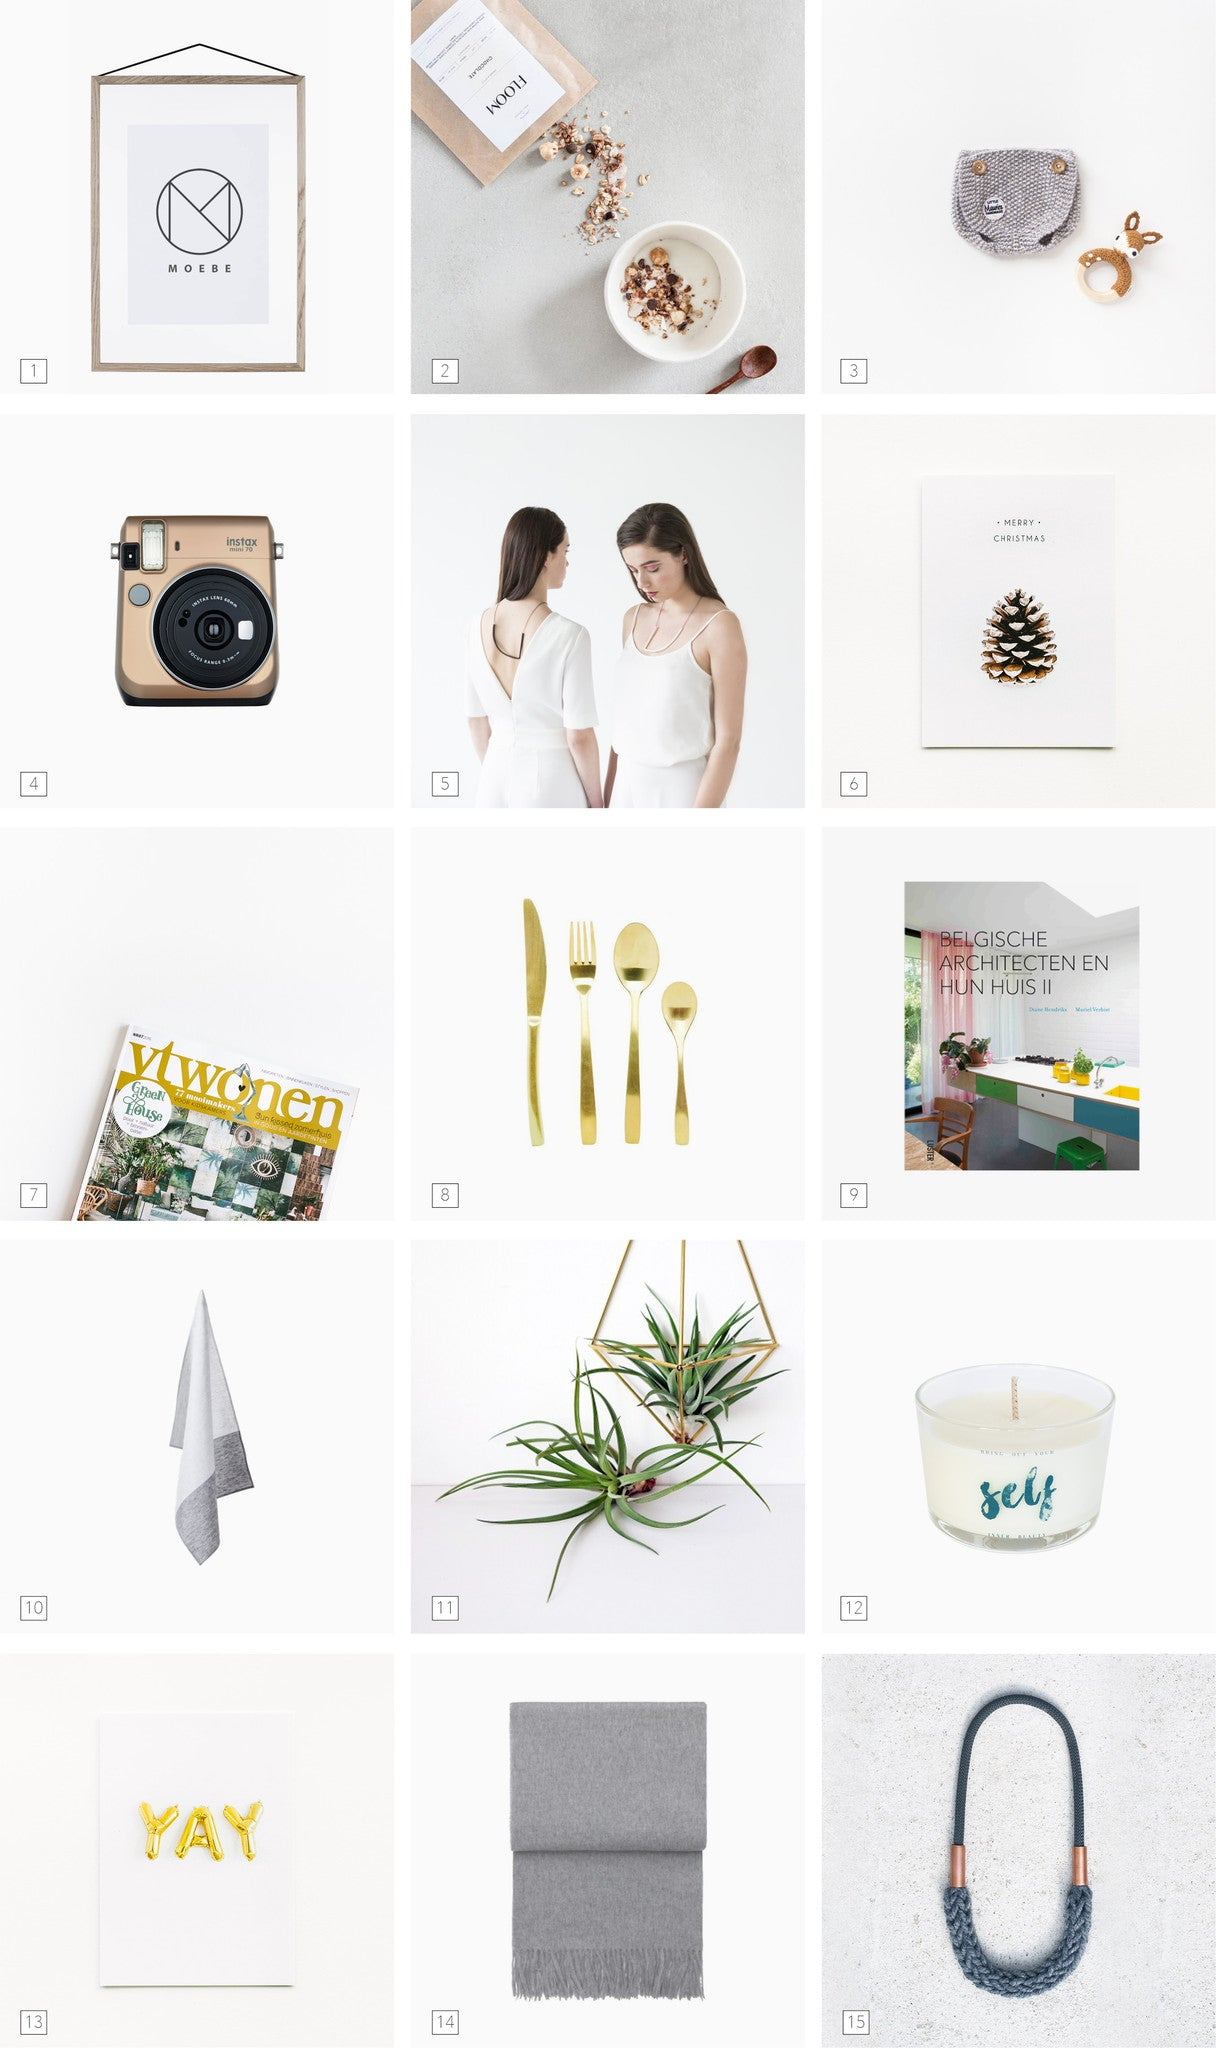 Featured in vtwonen: 15 Original Gift-Ideas for NYE